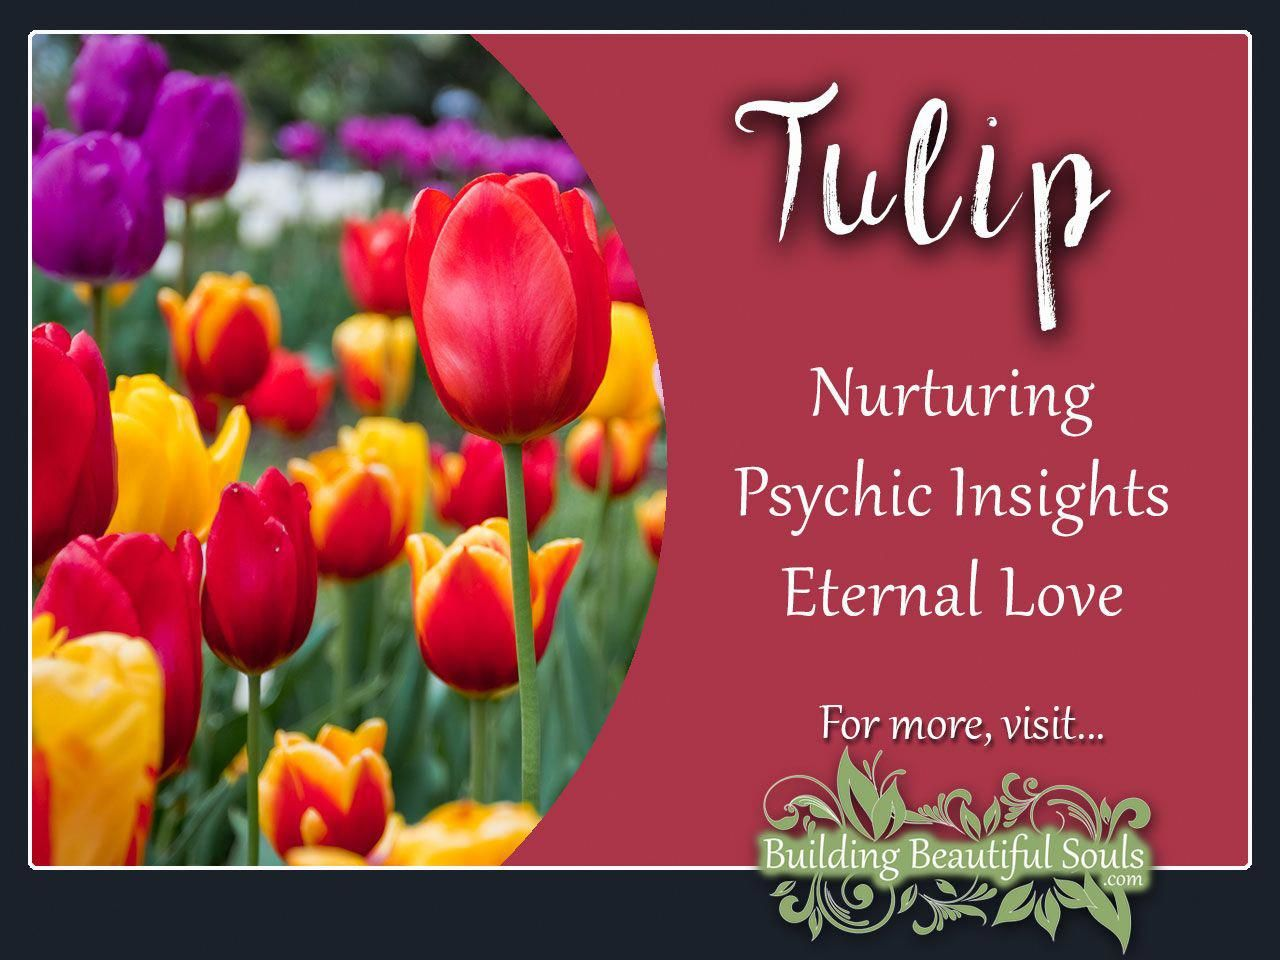 Tulip is a powerful flower delve deeply into tulip meaning